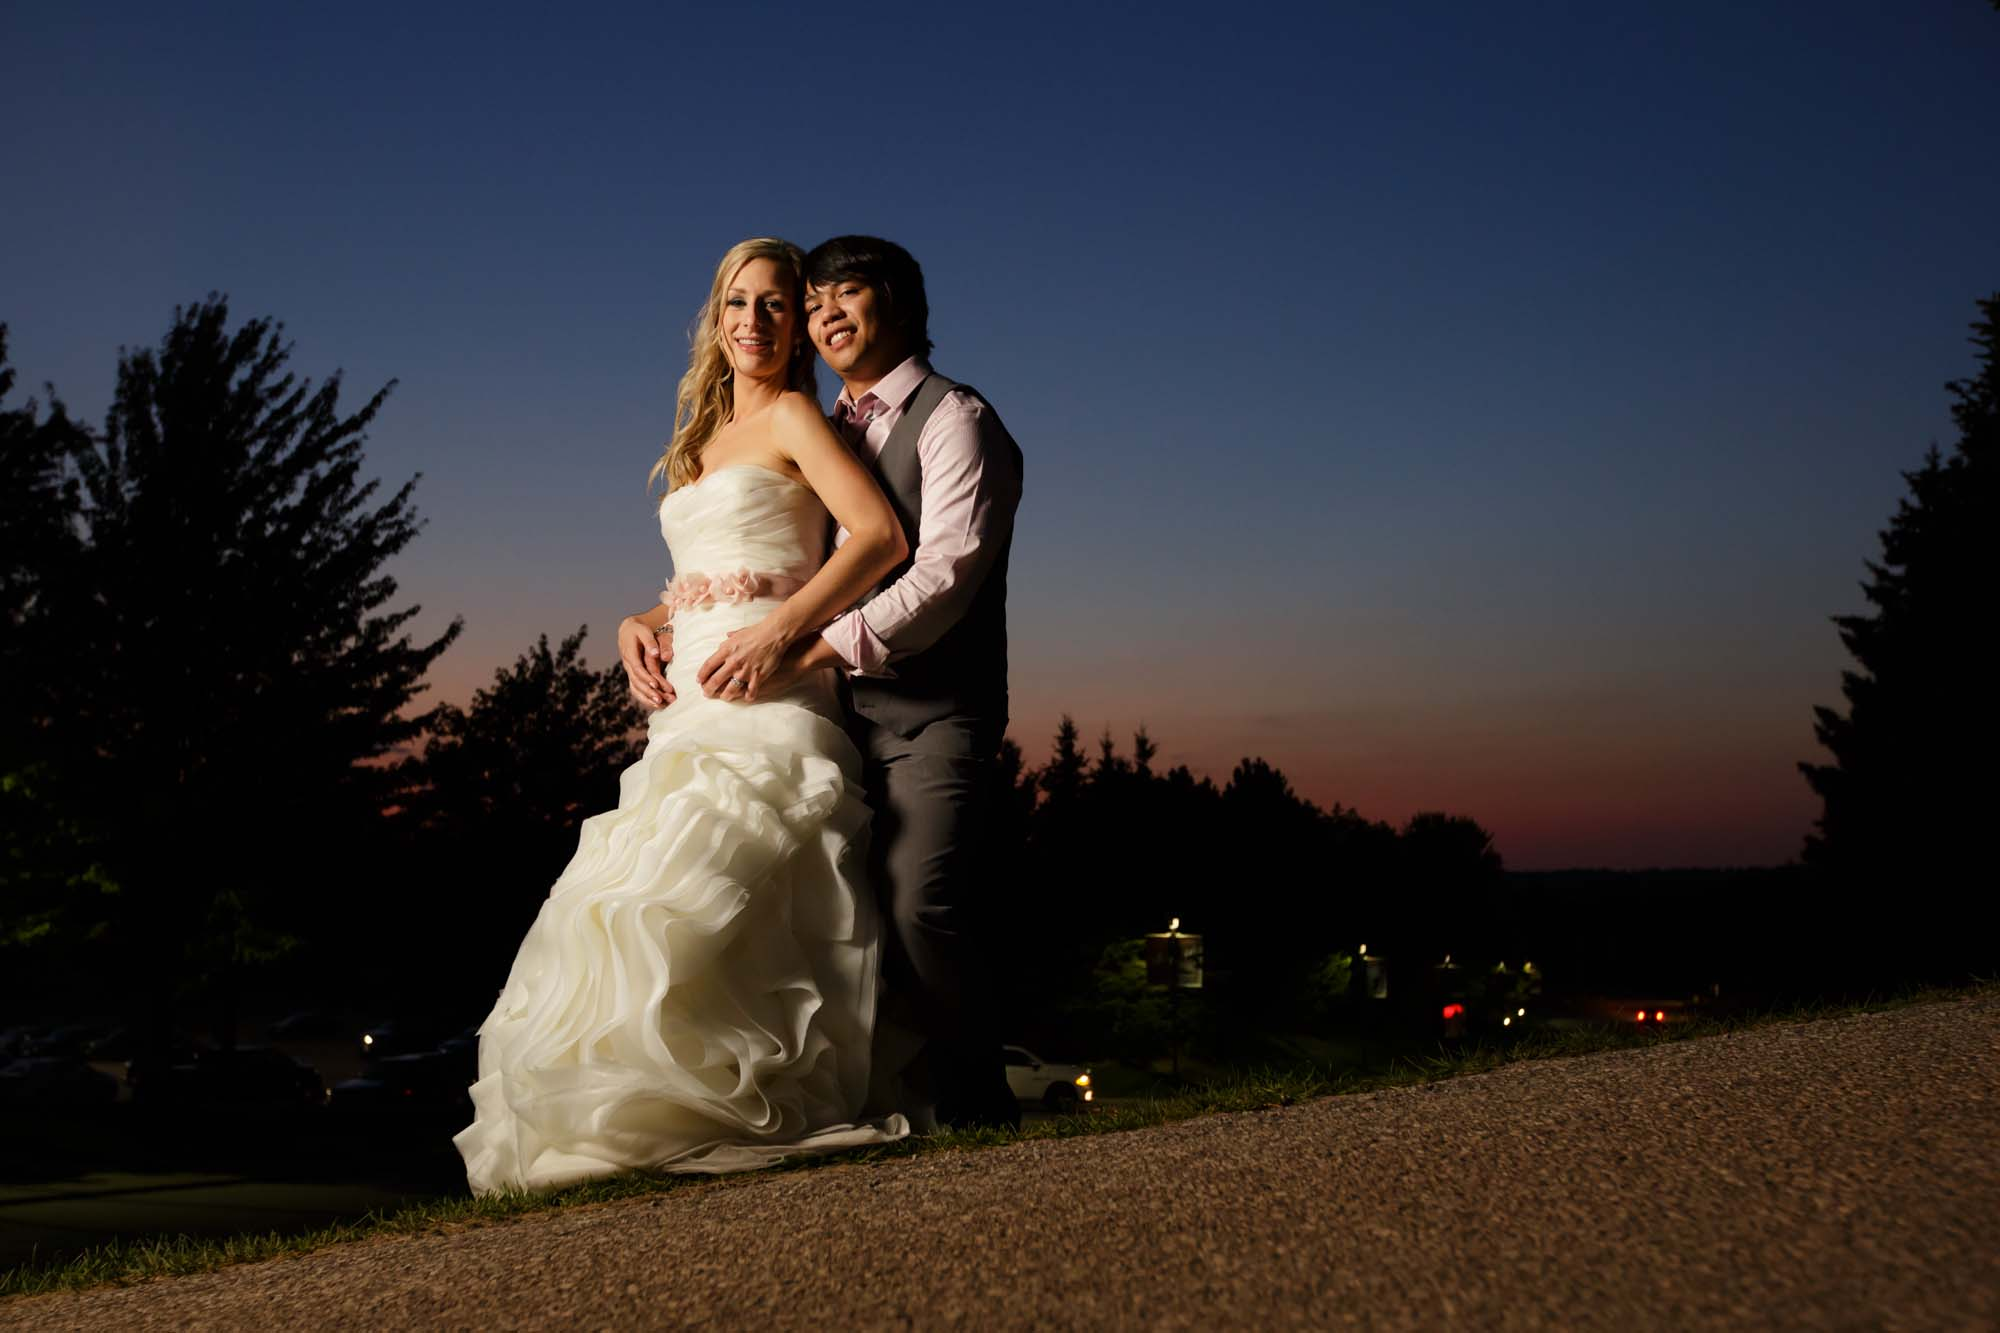 Wedding photography at horseshoe resort in barrie on for Wedding photography internships